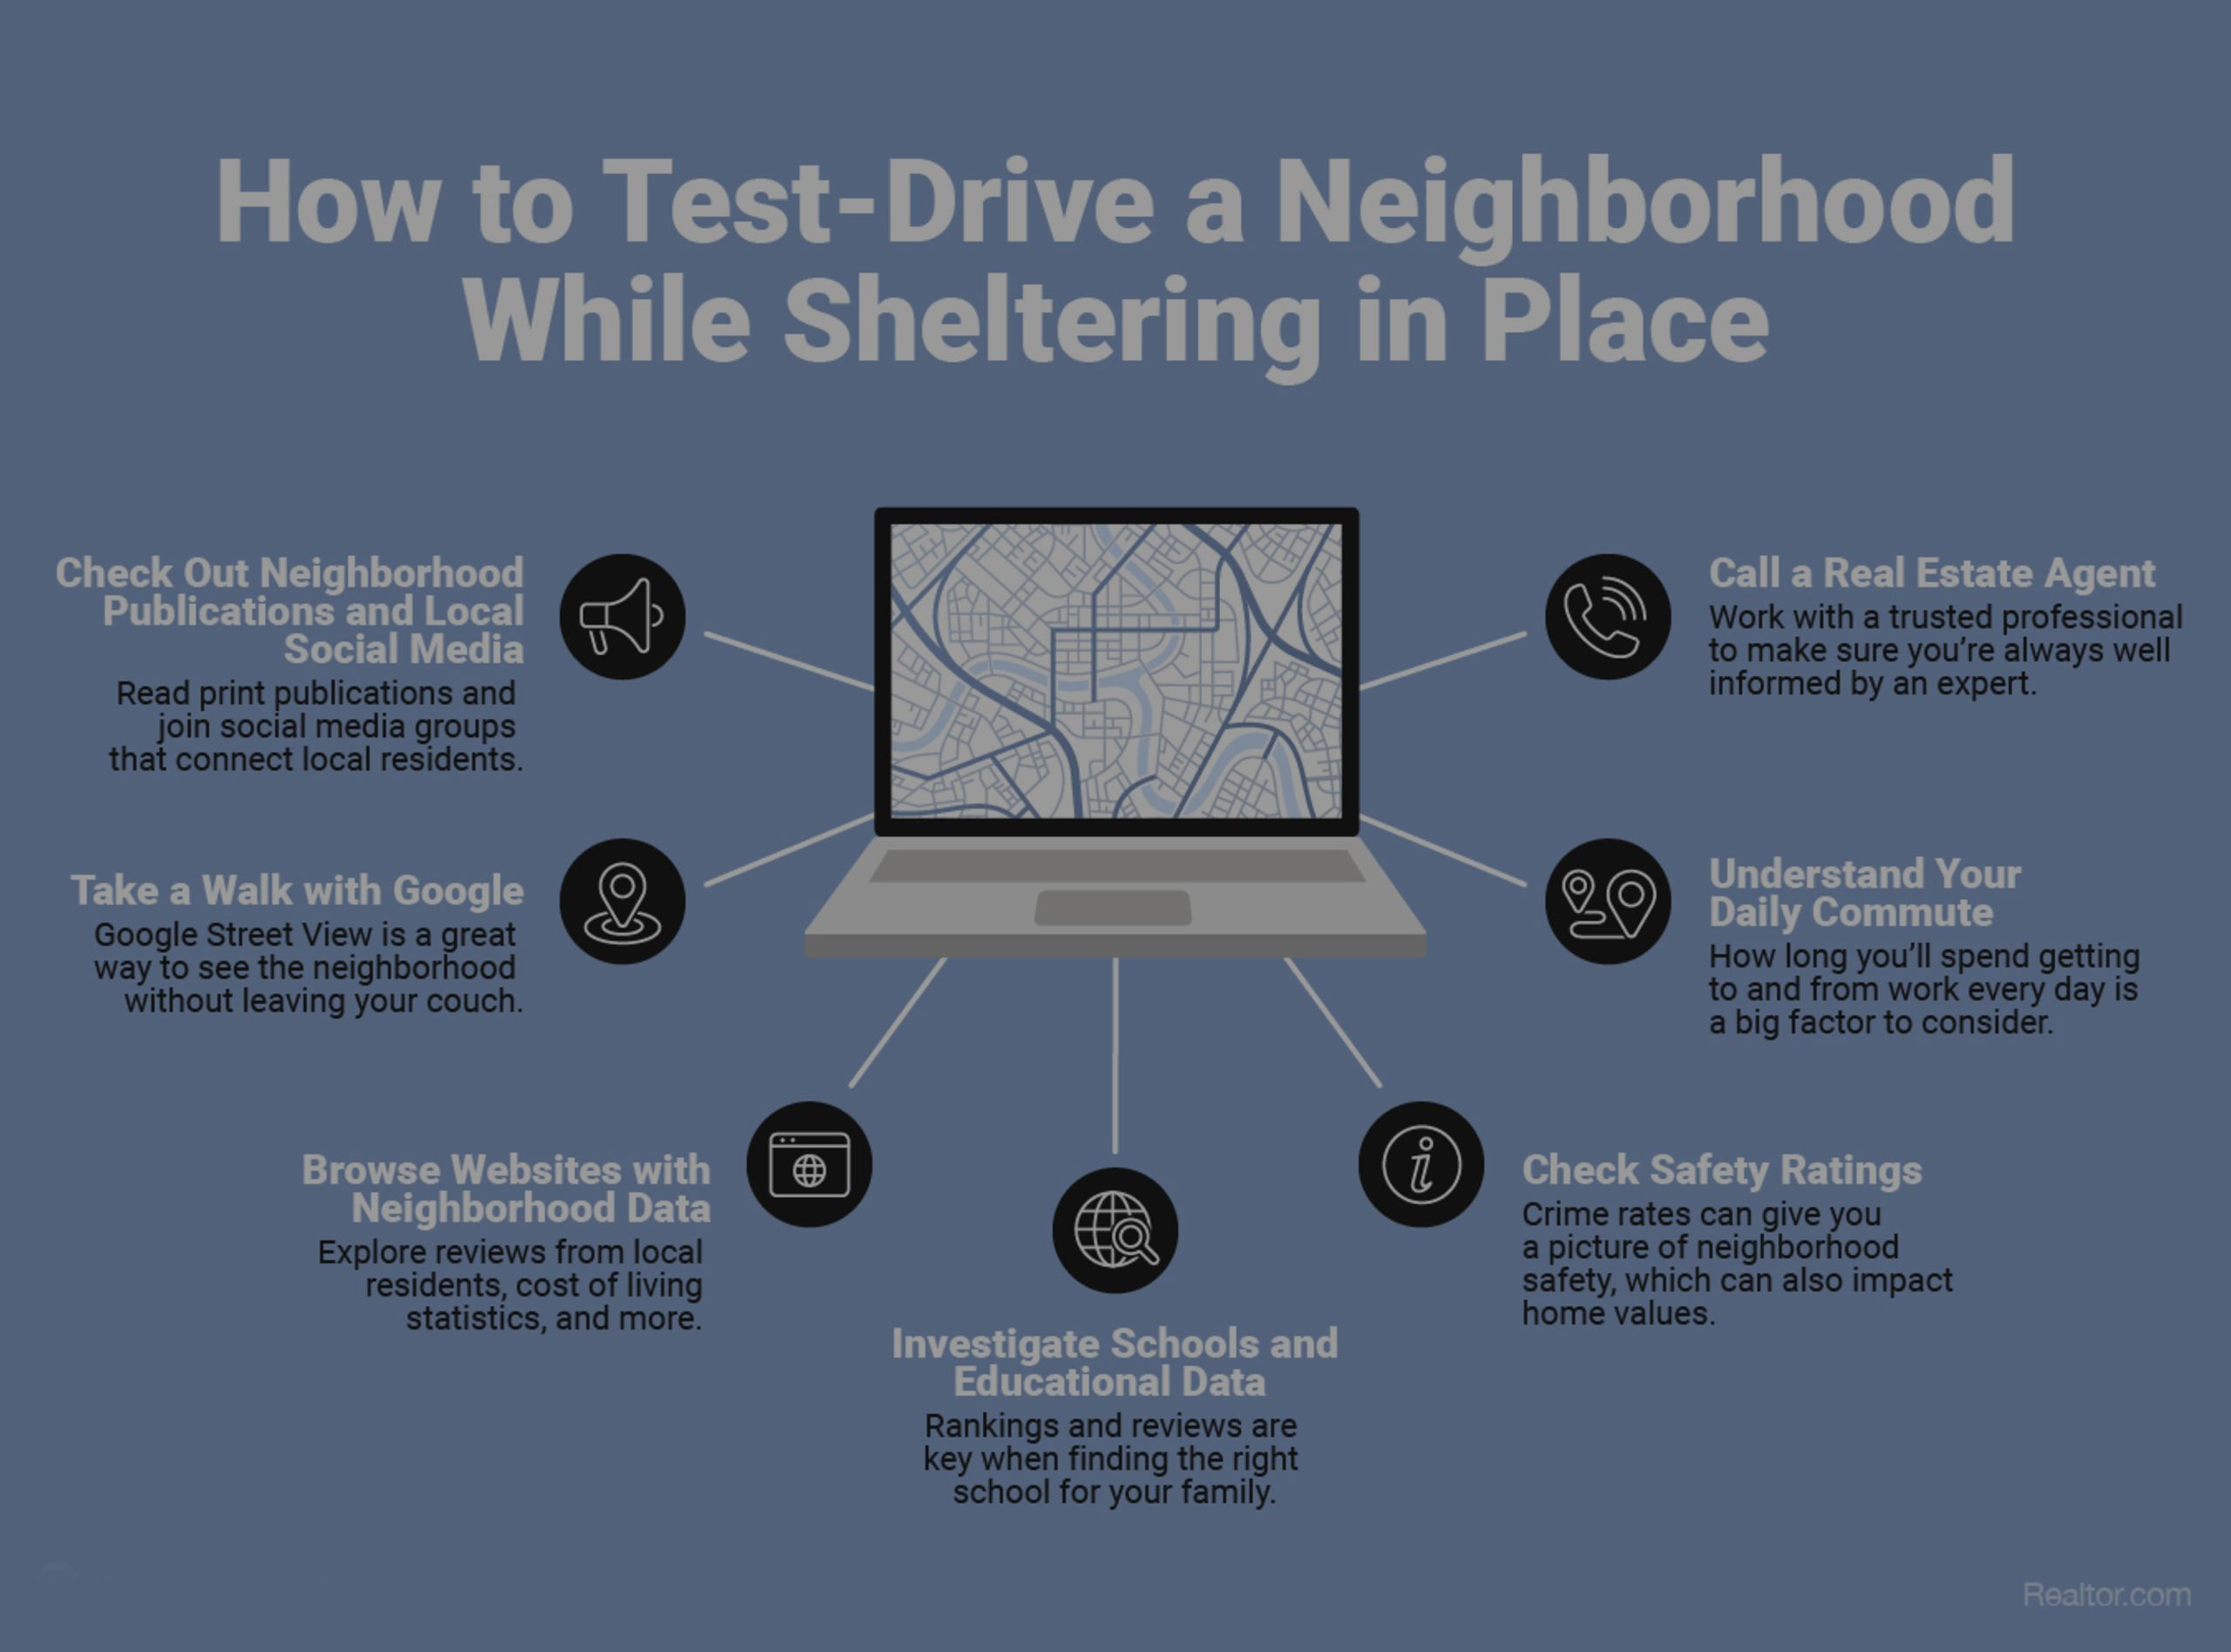 How to Test-Drive a Neighborhood While Sheltering in Place